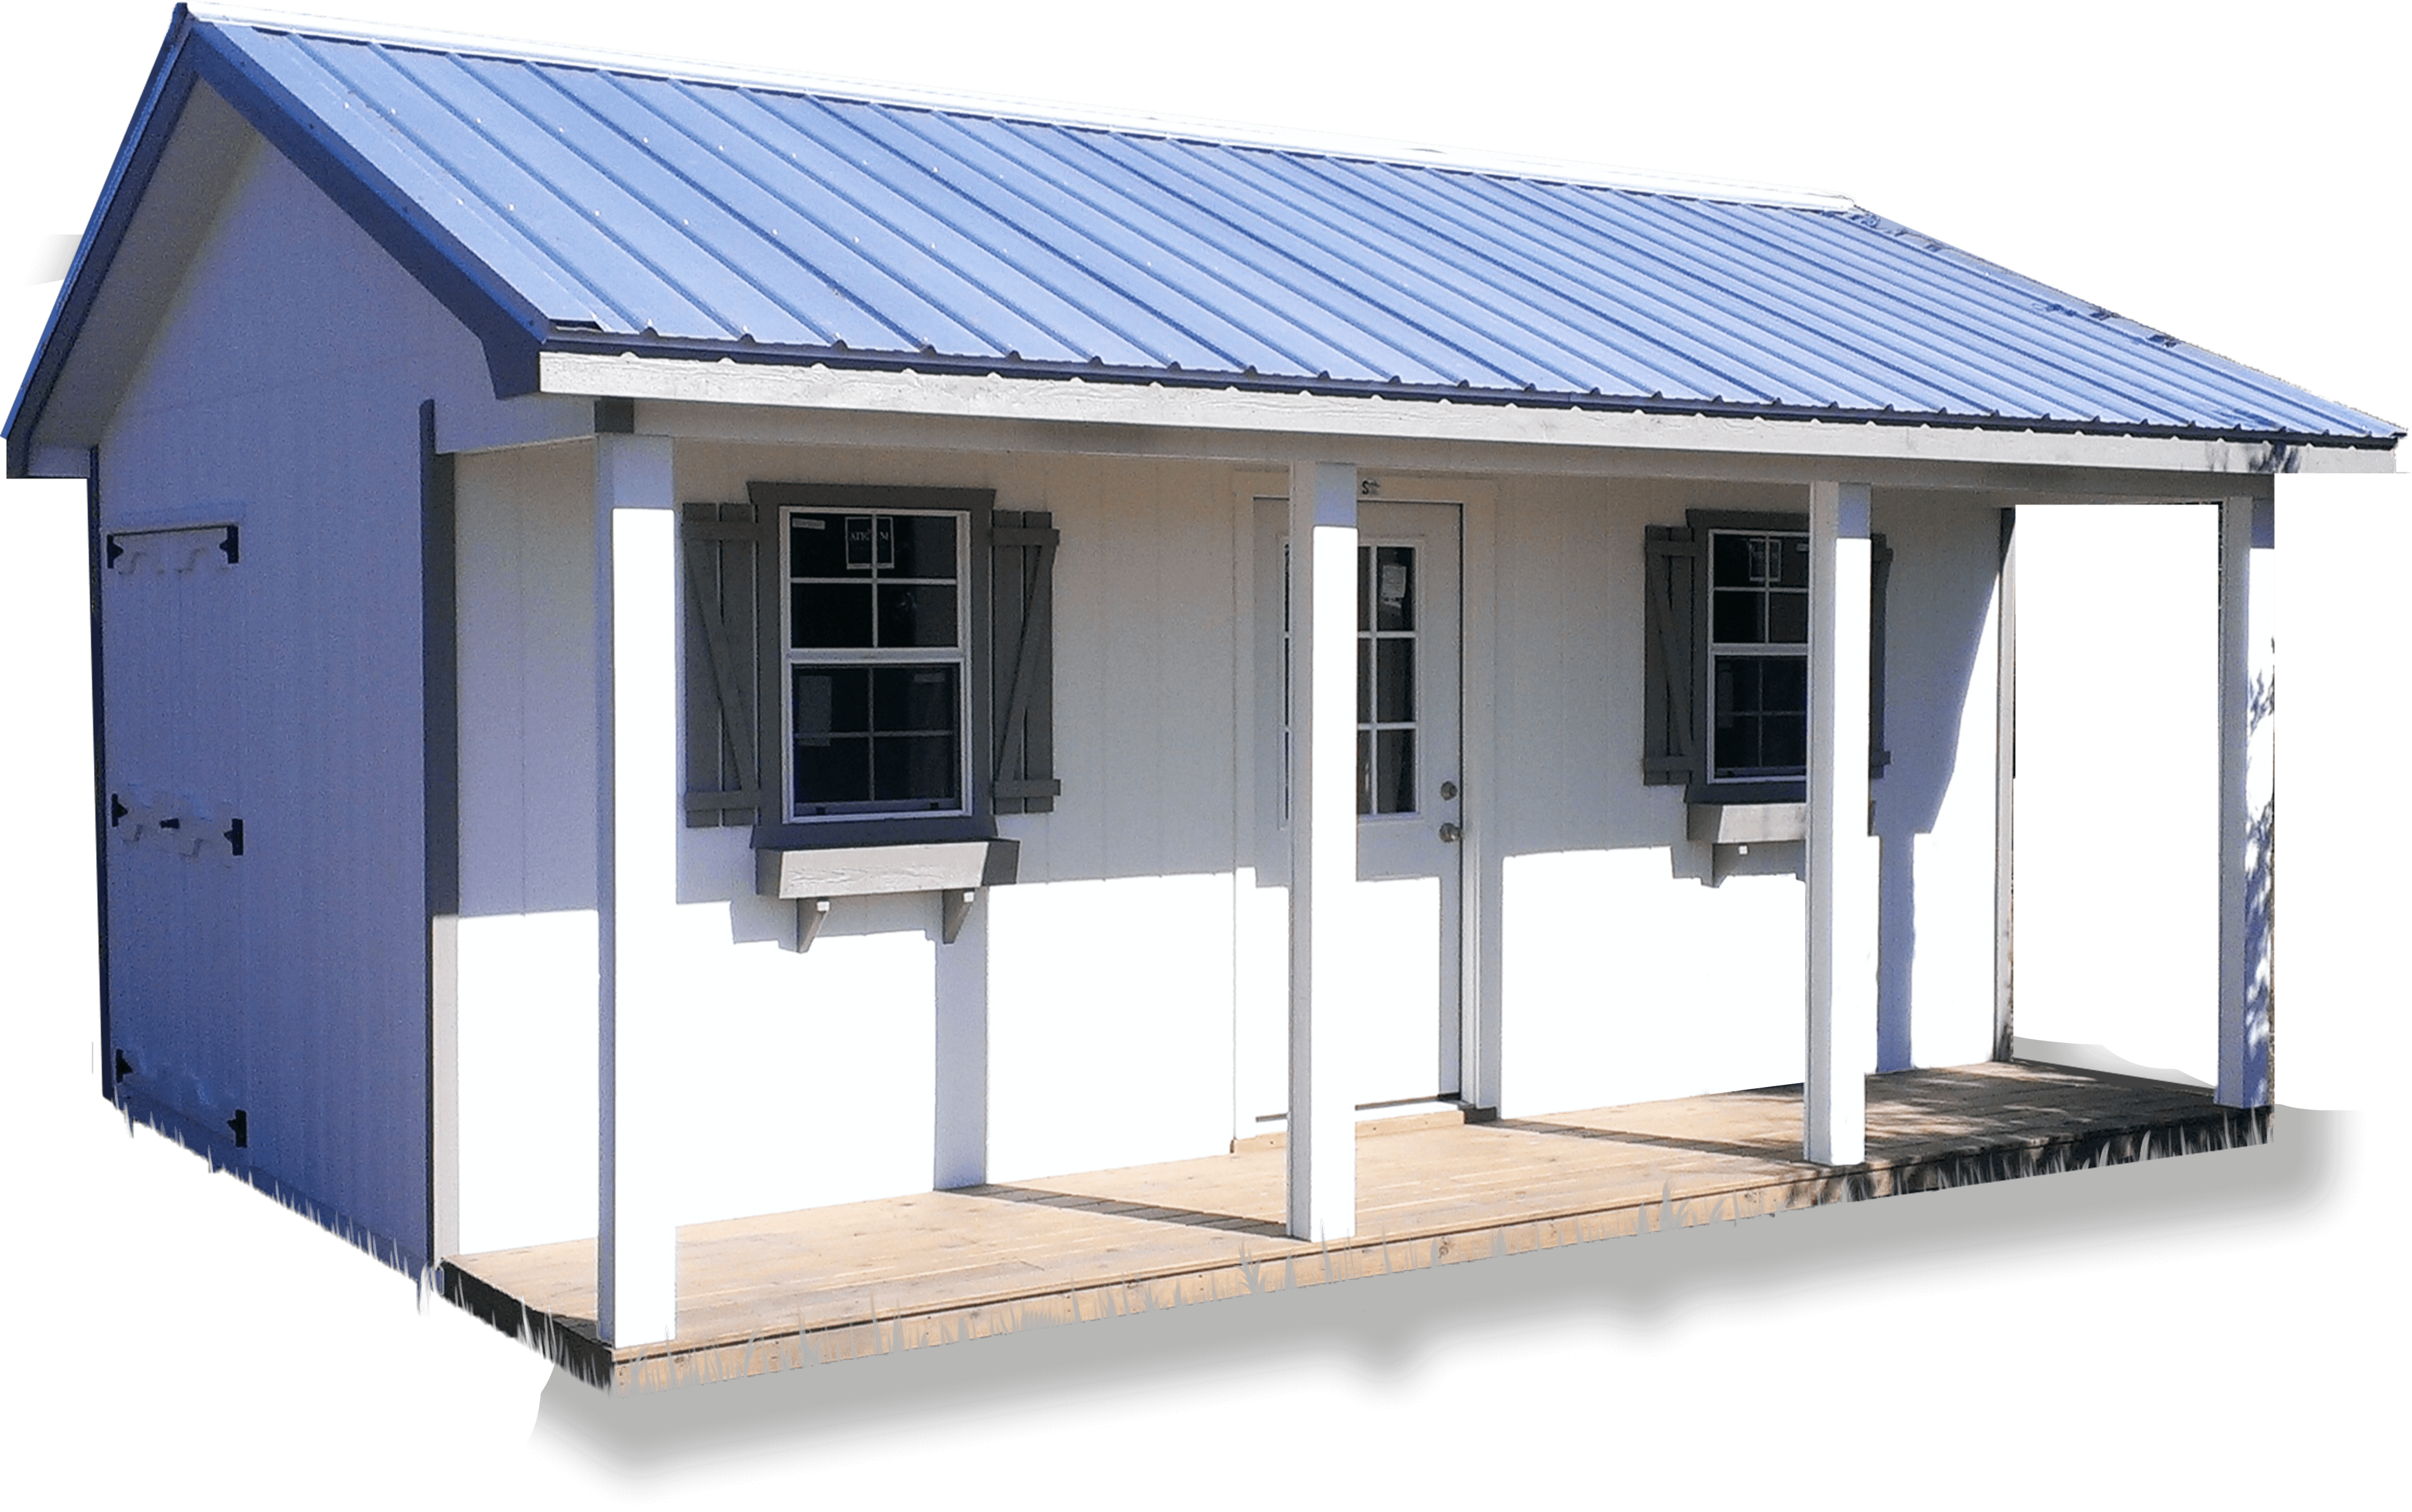 Home - Portable Storage Sheds Austin TX | Sheds, Garages ...